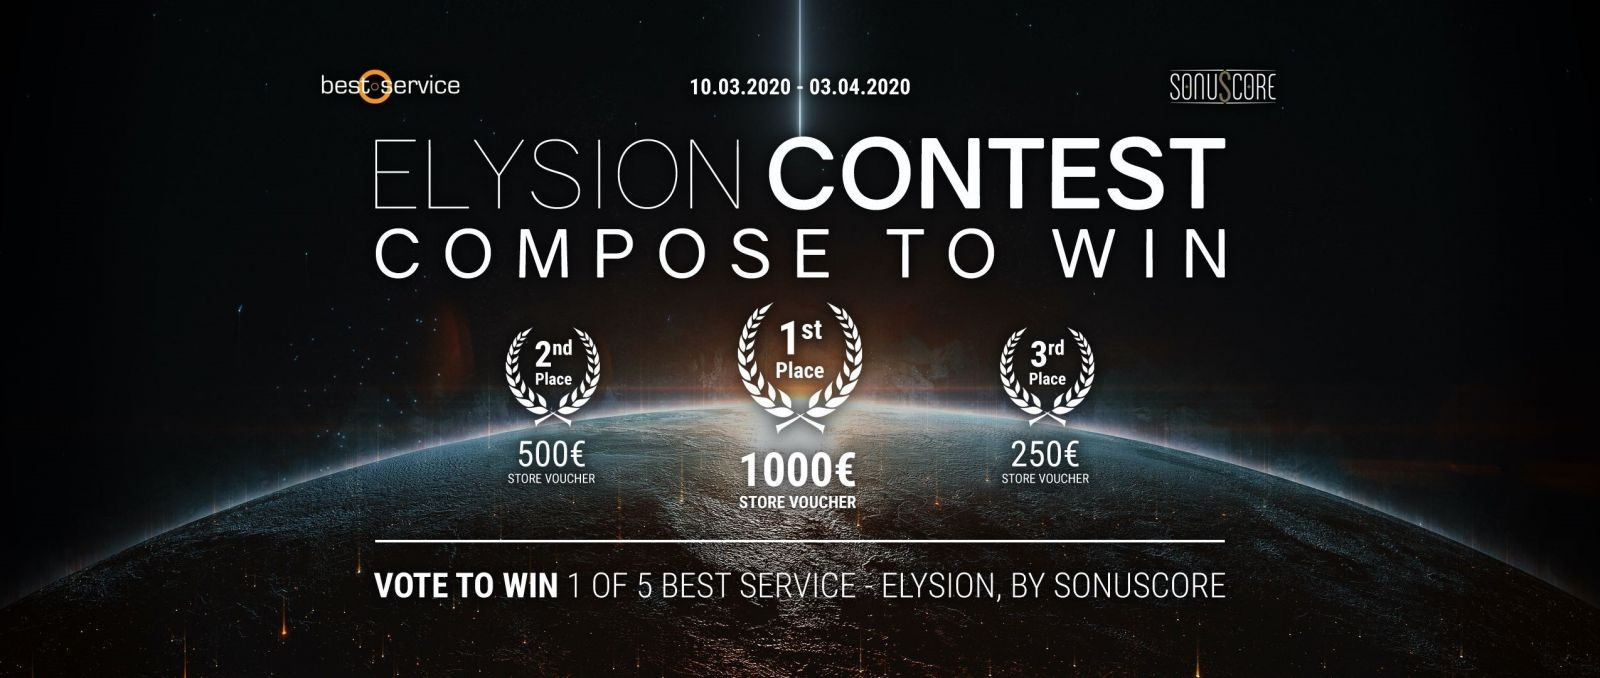 Elysion Composer Contest